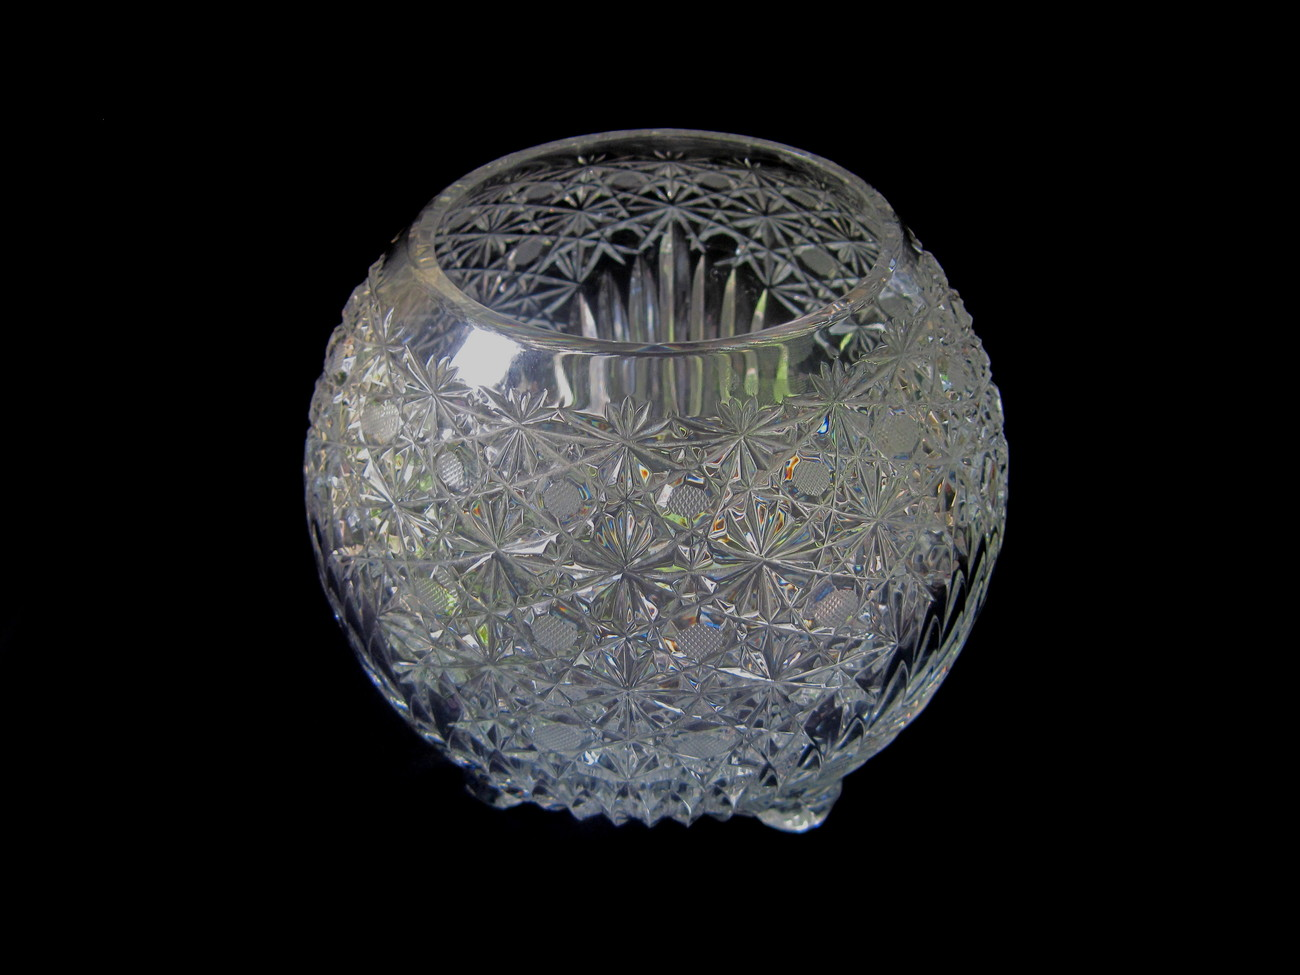 Crystal_fancy_sphere_bowl_007